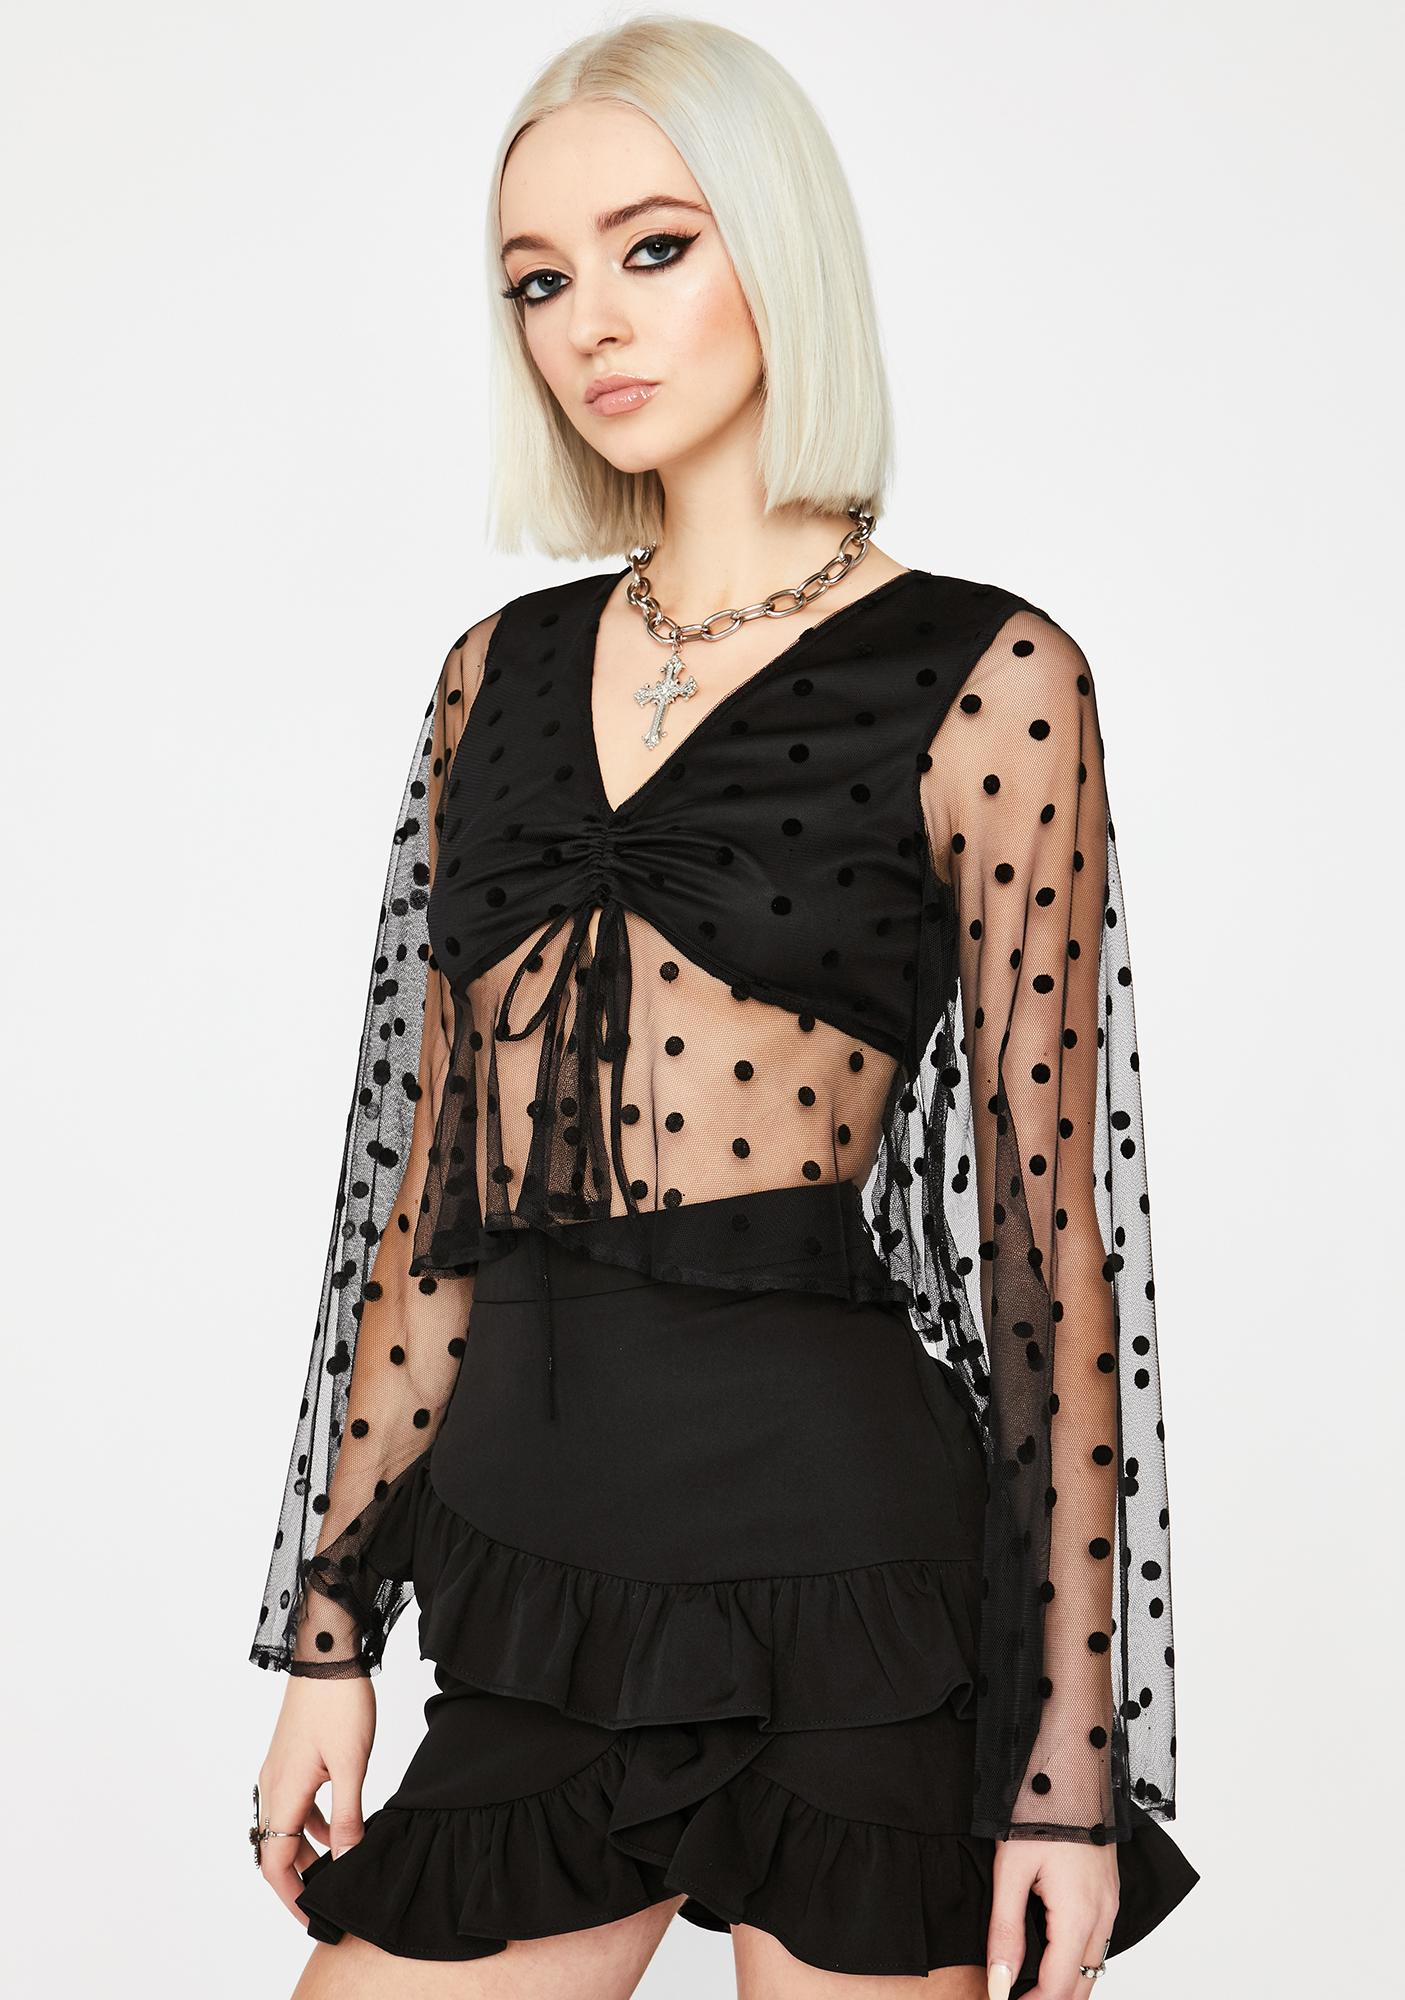 Coal All Dolled Up Sheer Crop Top